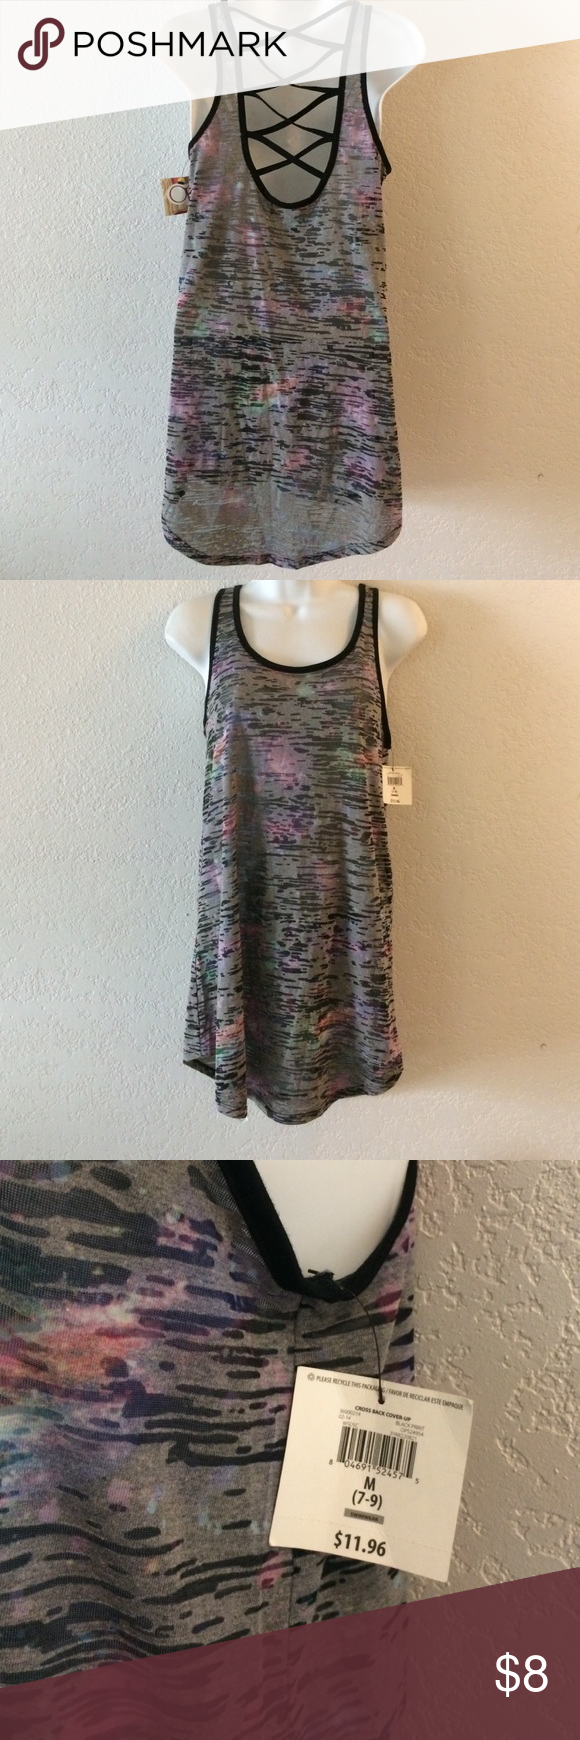 BNWTS OP TANK TOP Brand-new with tags size medium see-through cross strap tank top . wrapped and shipped with care ocean pacific Tops Tank Tops